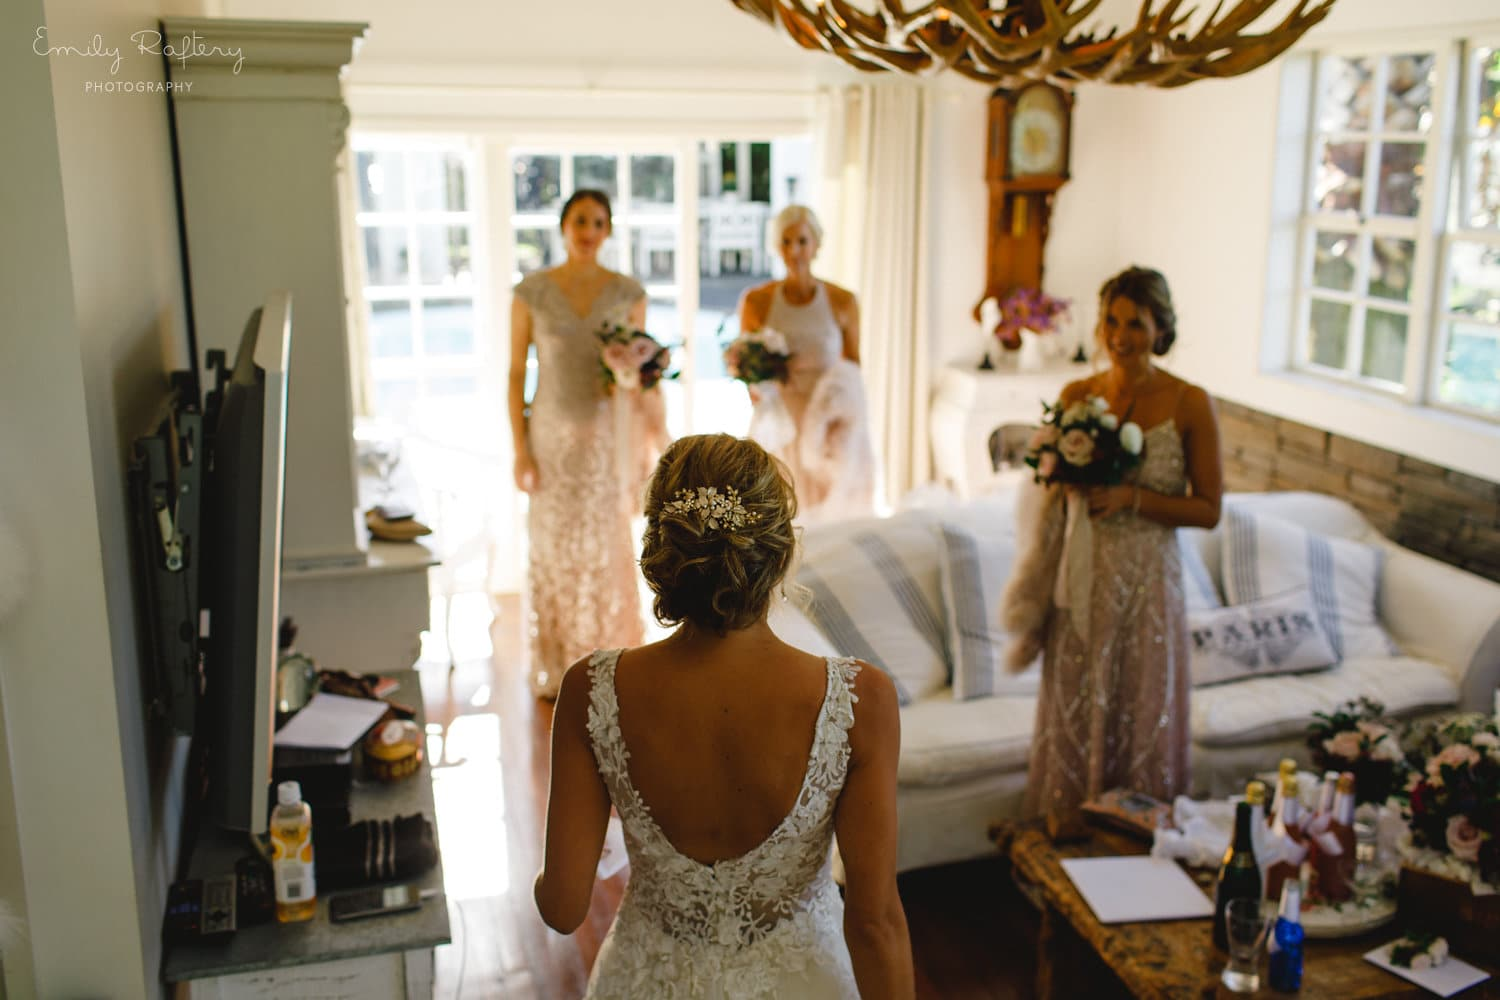 Real Weddings | Vinka Design | Real Brides Wearing Vinka Gowns | Helena and Tim - Helena with bridesmaids back to camera showing low back of beautiful bespoke Delta wedding dress